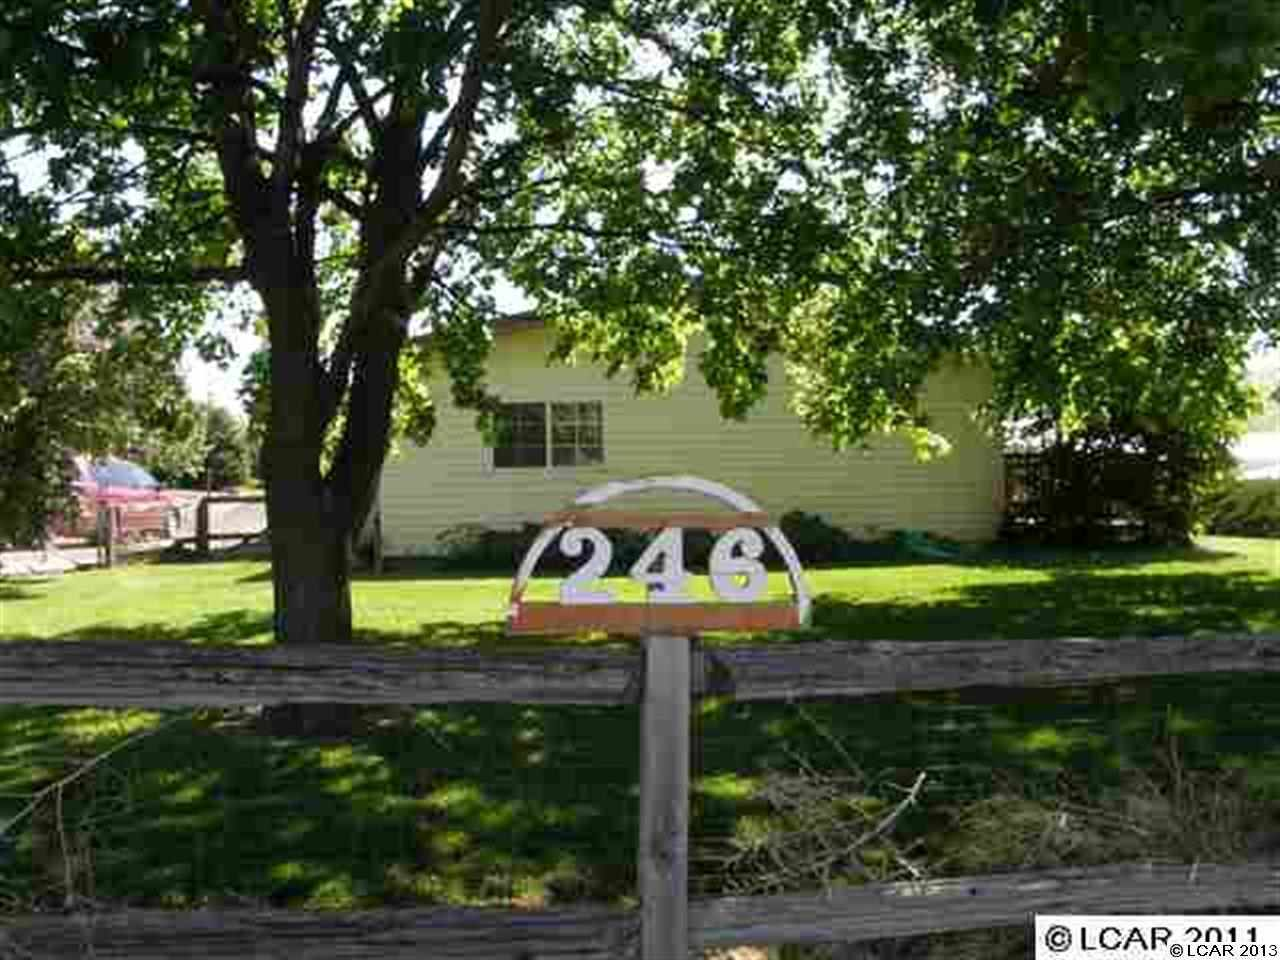 246 25th St, Pomeroy, WA 99347